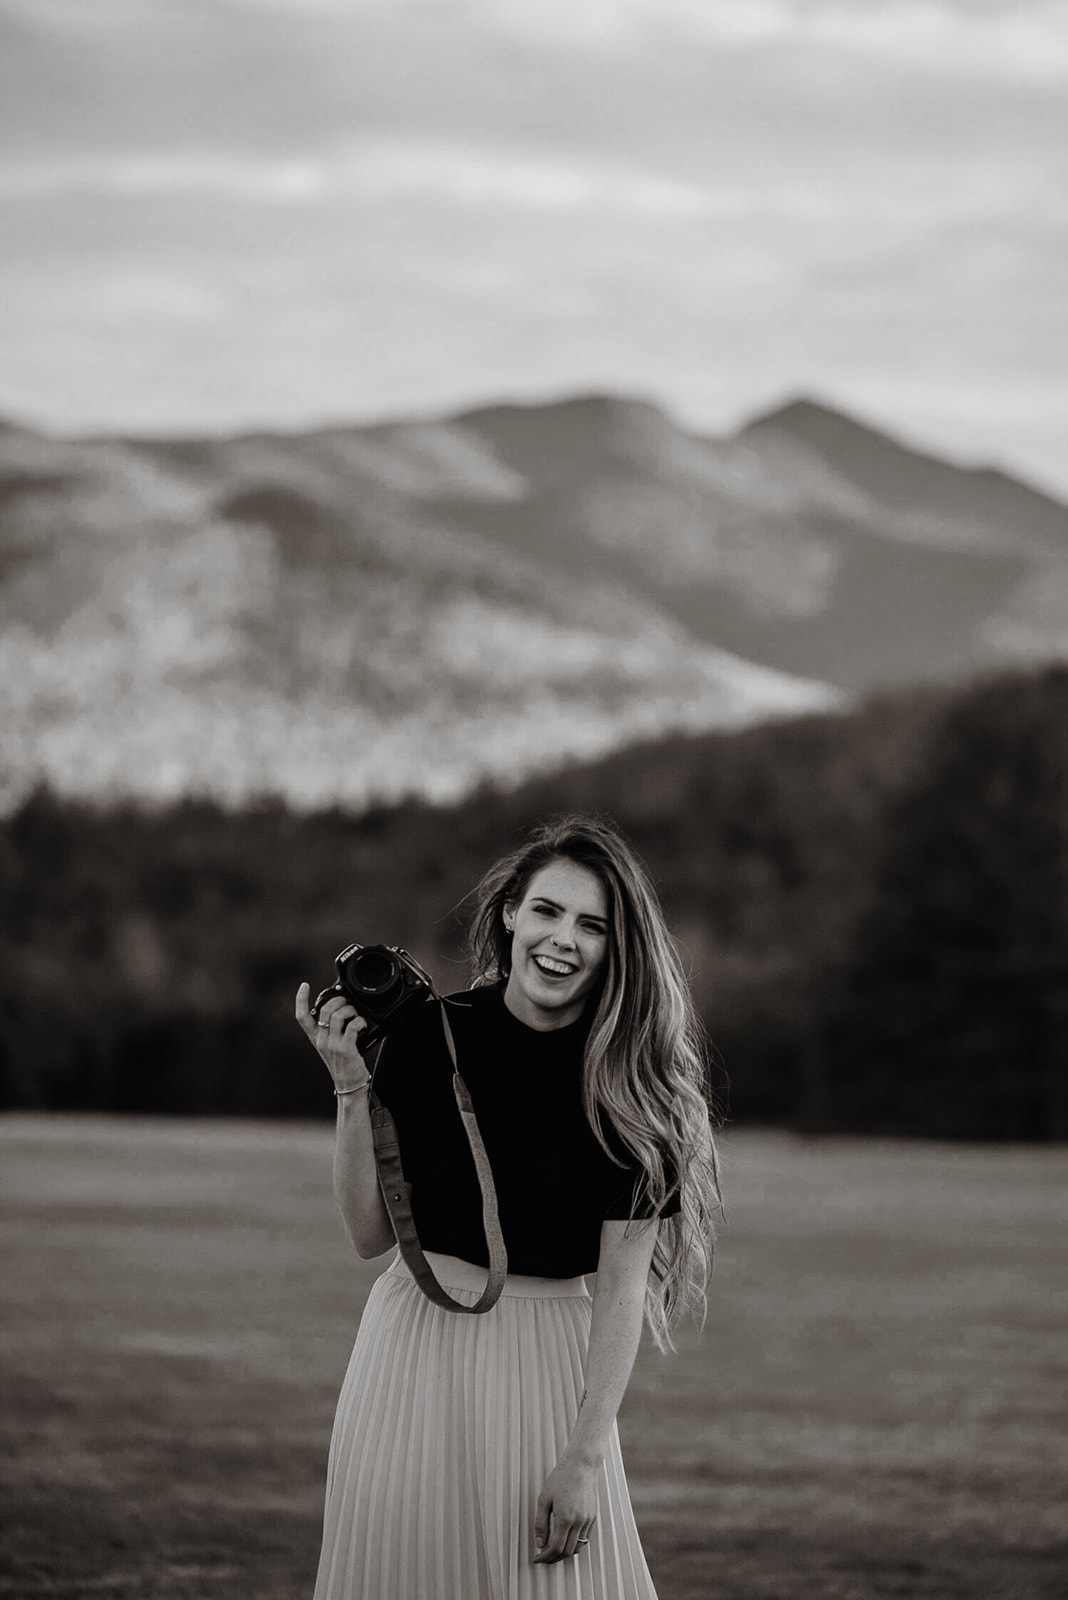 Copy of Interview with Laura Pinckard on Building Her Photography Business